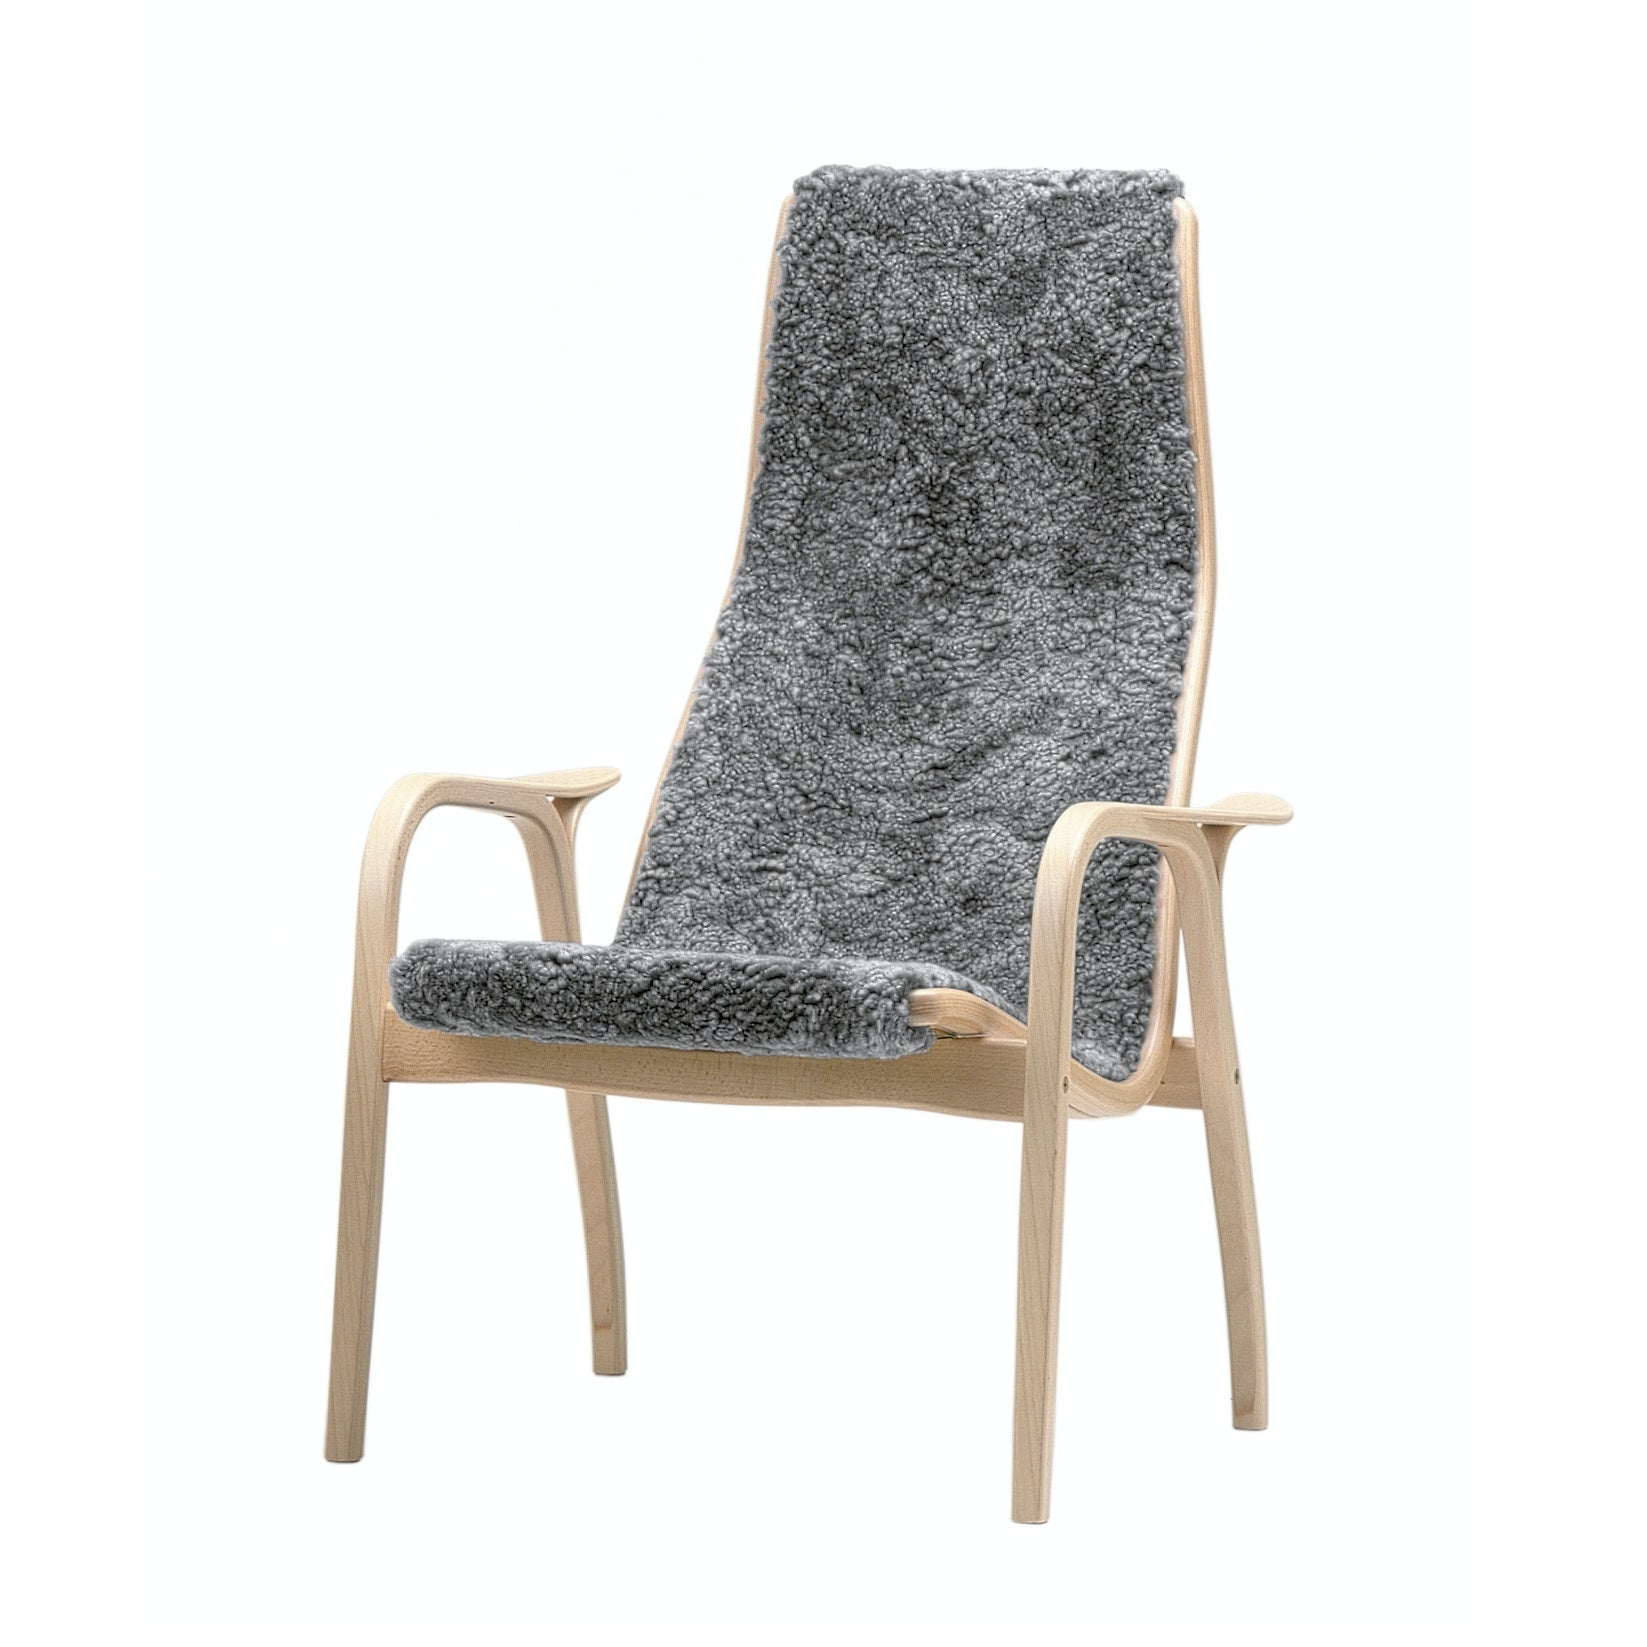 SWEDESE | Lamino Chair Only | Oak Oiled frame | Scandinavian Grey Sheepskin Upholstery